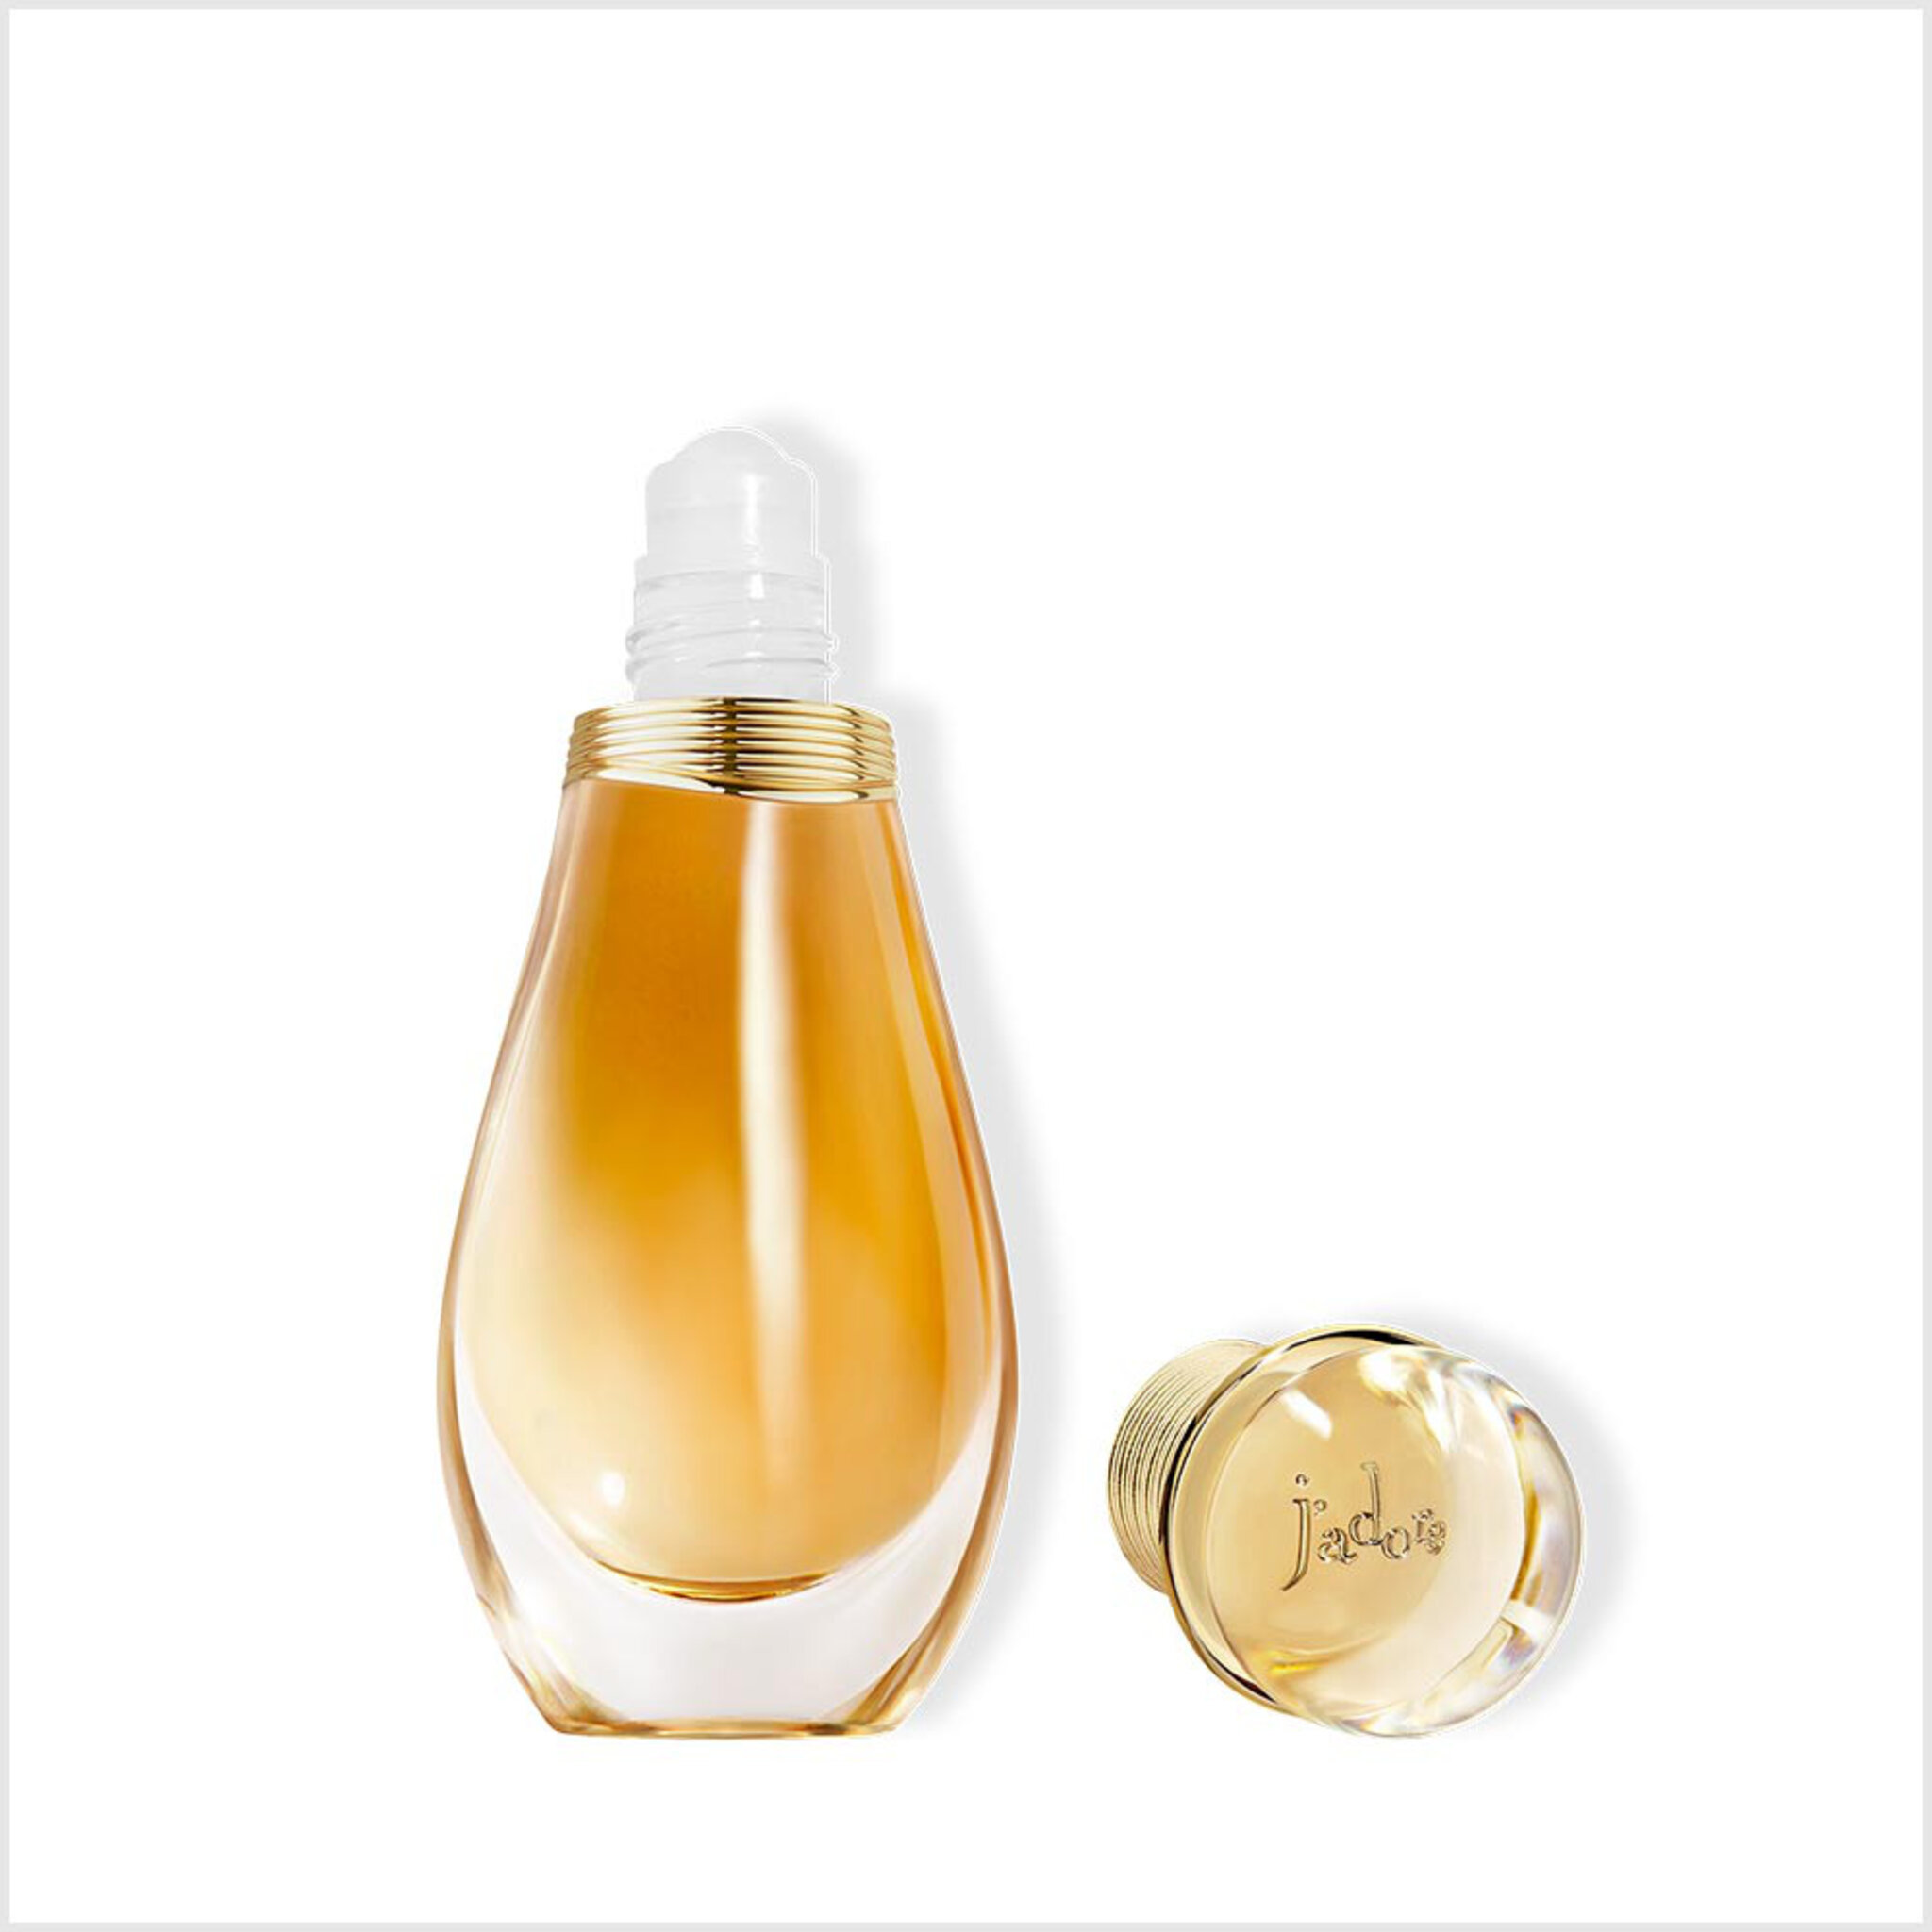 J'adore Infinissime EdP Roller Pearl